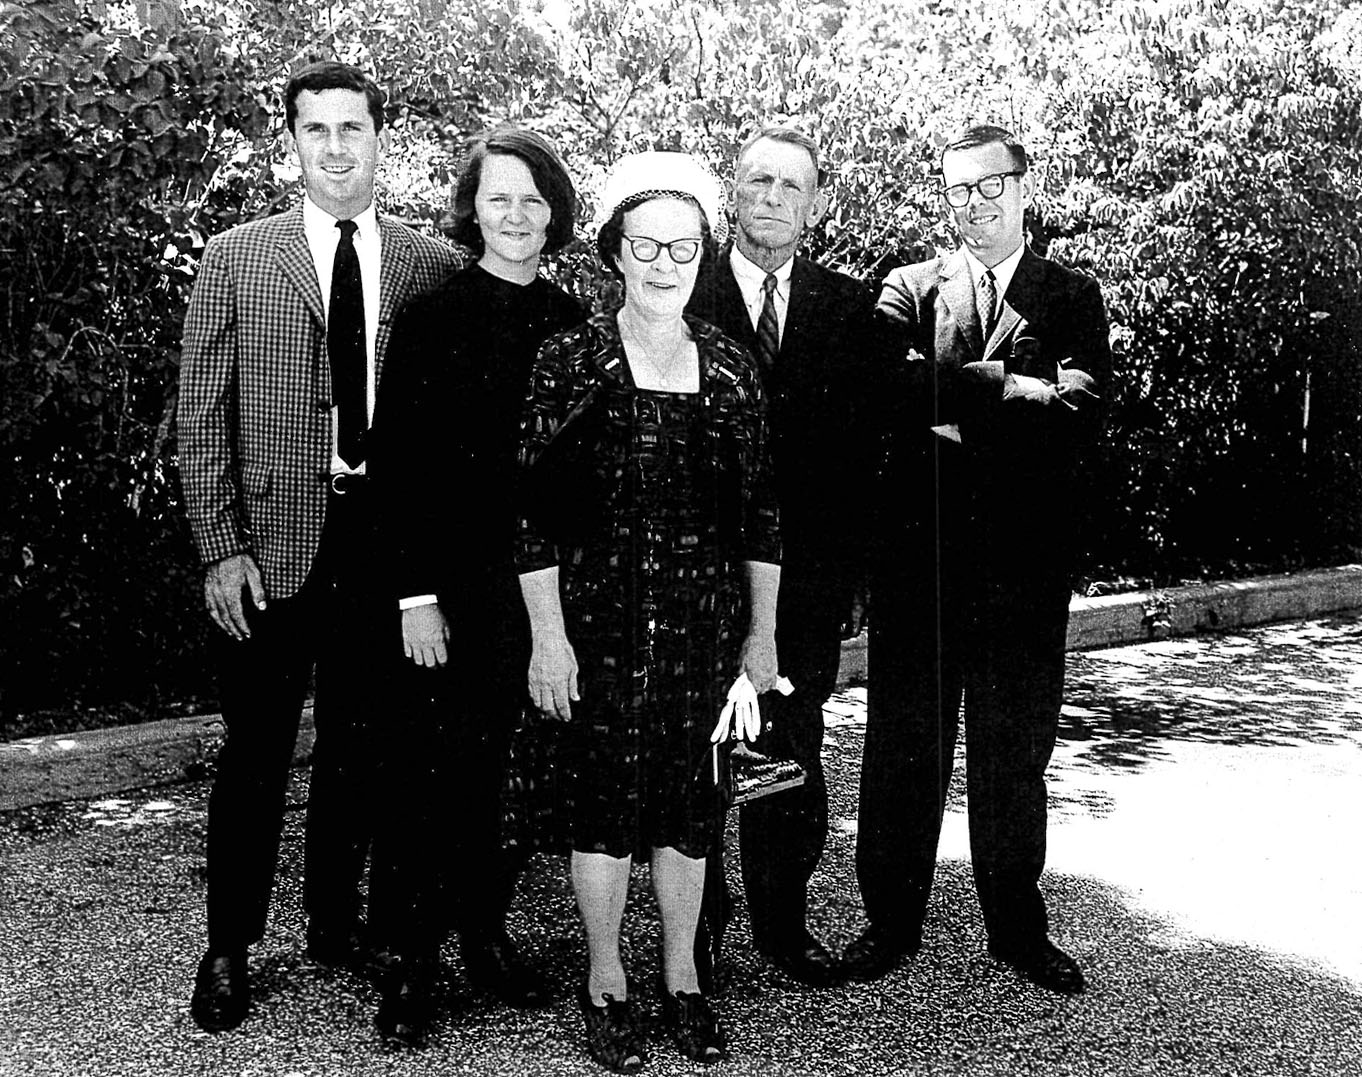 Sister Tesa,  second from left, with  (l-r) her brother John, mother Catherine,  father John, Sr., and brother Frank, on her day of entrance into the Sisters of St Joseph, in Brentwood, New York. Maureen, Sister Tesa's sister, is not pictured.